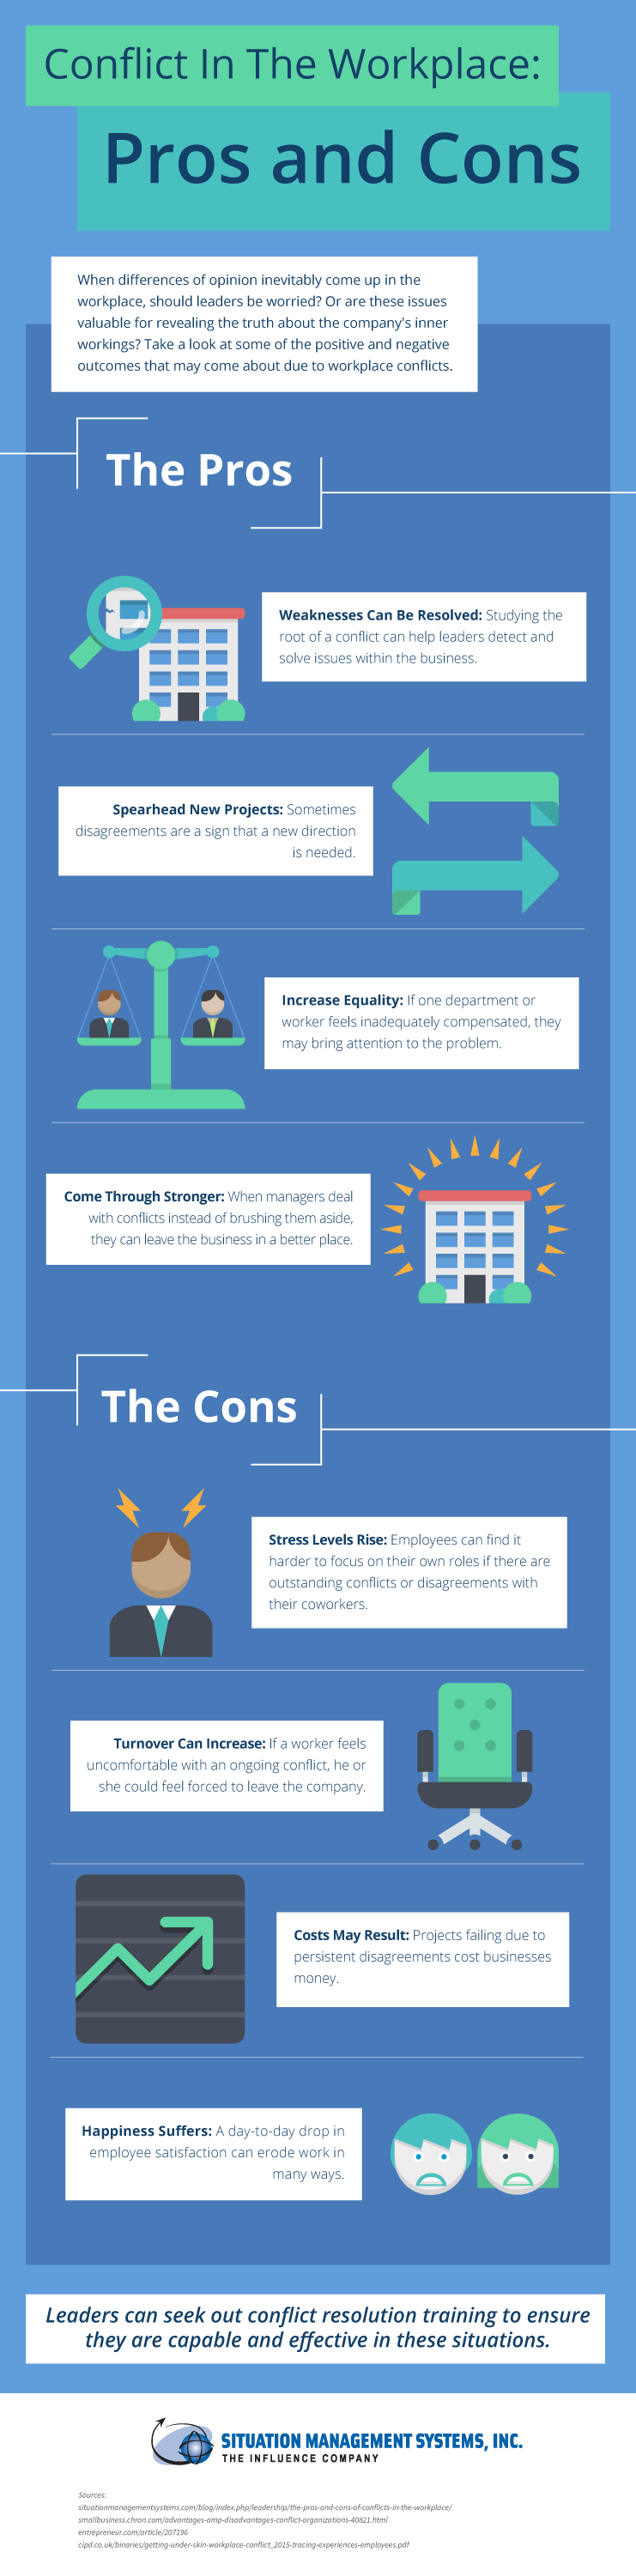 CONFLICT IN THE WORKPLACE: PROS AND CONS